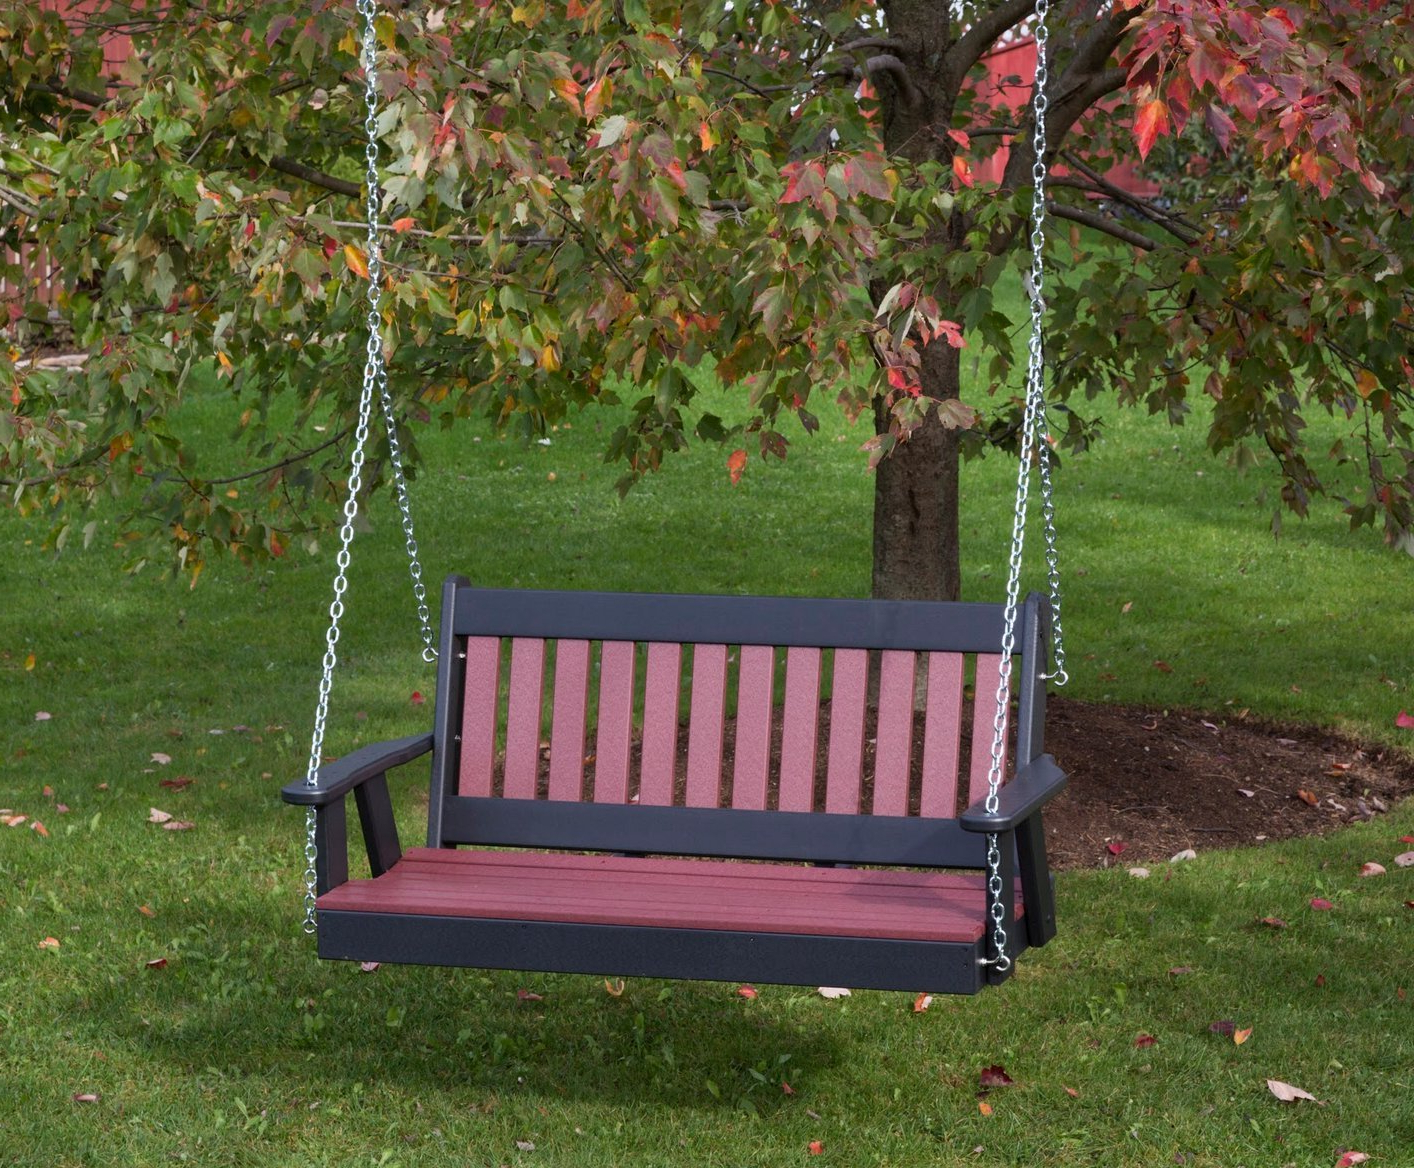 Ecommersify Inc 5ft Black Poly Lumber Mission Porch Swing Heavy Duty Everlasting Polytuf Hdpe – Made In Usa – Amish Crafted Throughout Trendy Outdoor Furniture yacht Club 2 Person Recycled Plastic Outdoor Swings (View 27 of 30)